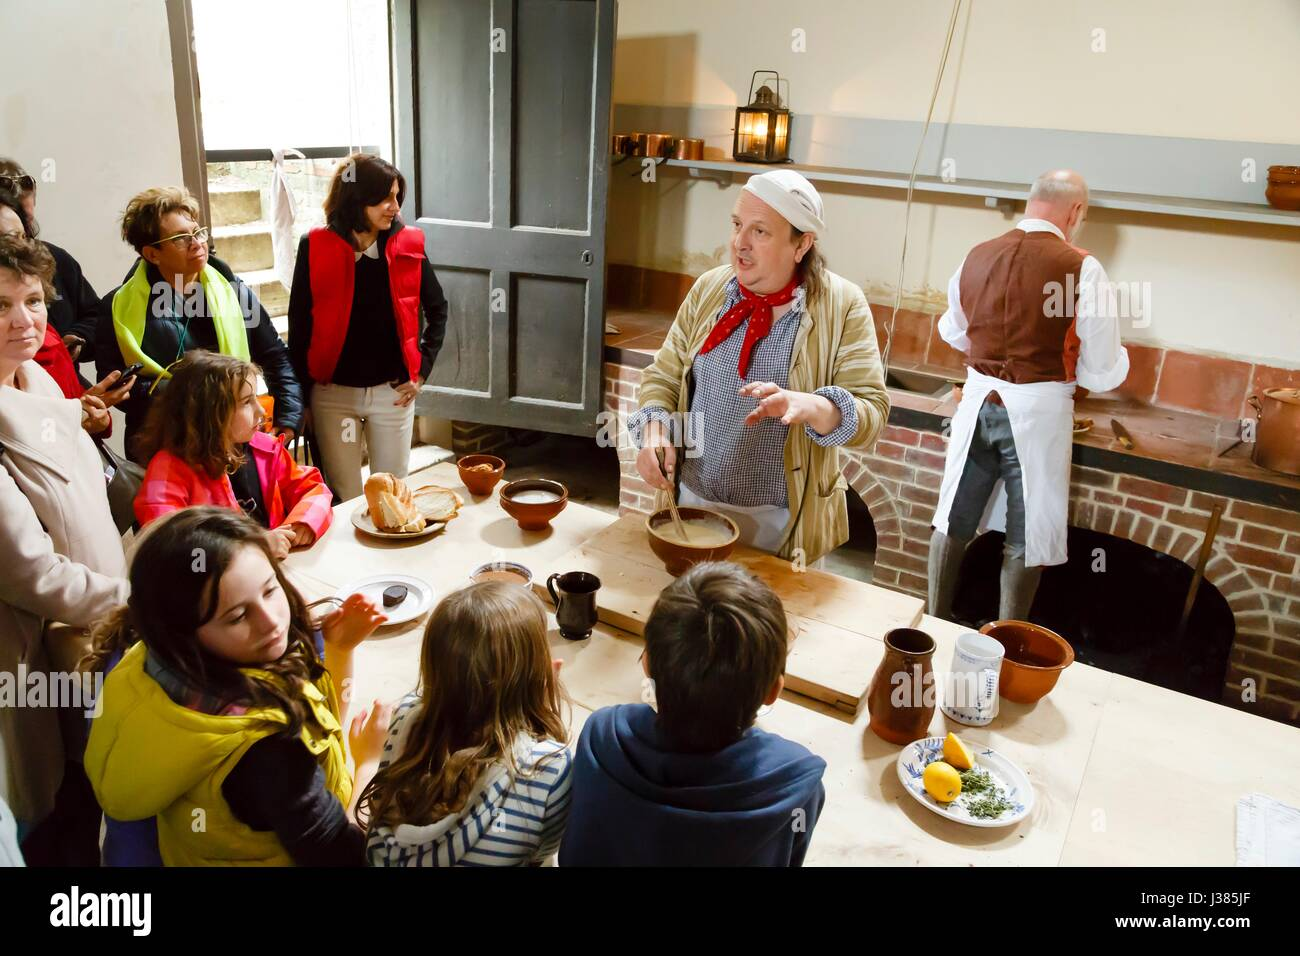 Chefs in traditional dress demonstrate cookery at the Royal Kitchens, Kew Gardens, London, UK - Stock Image